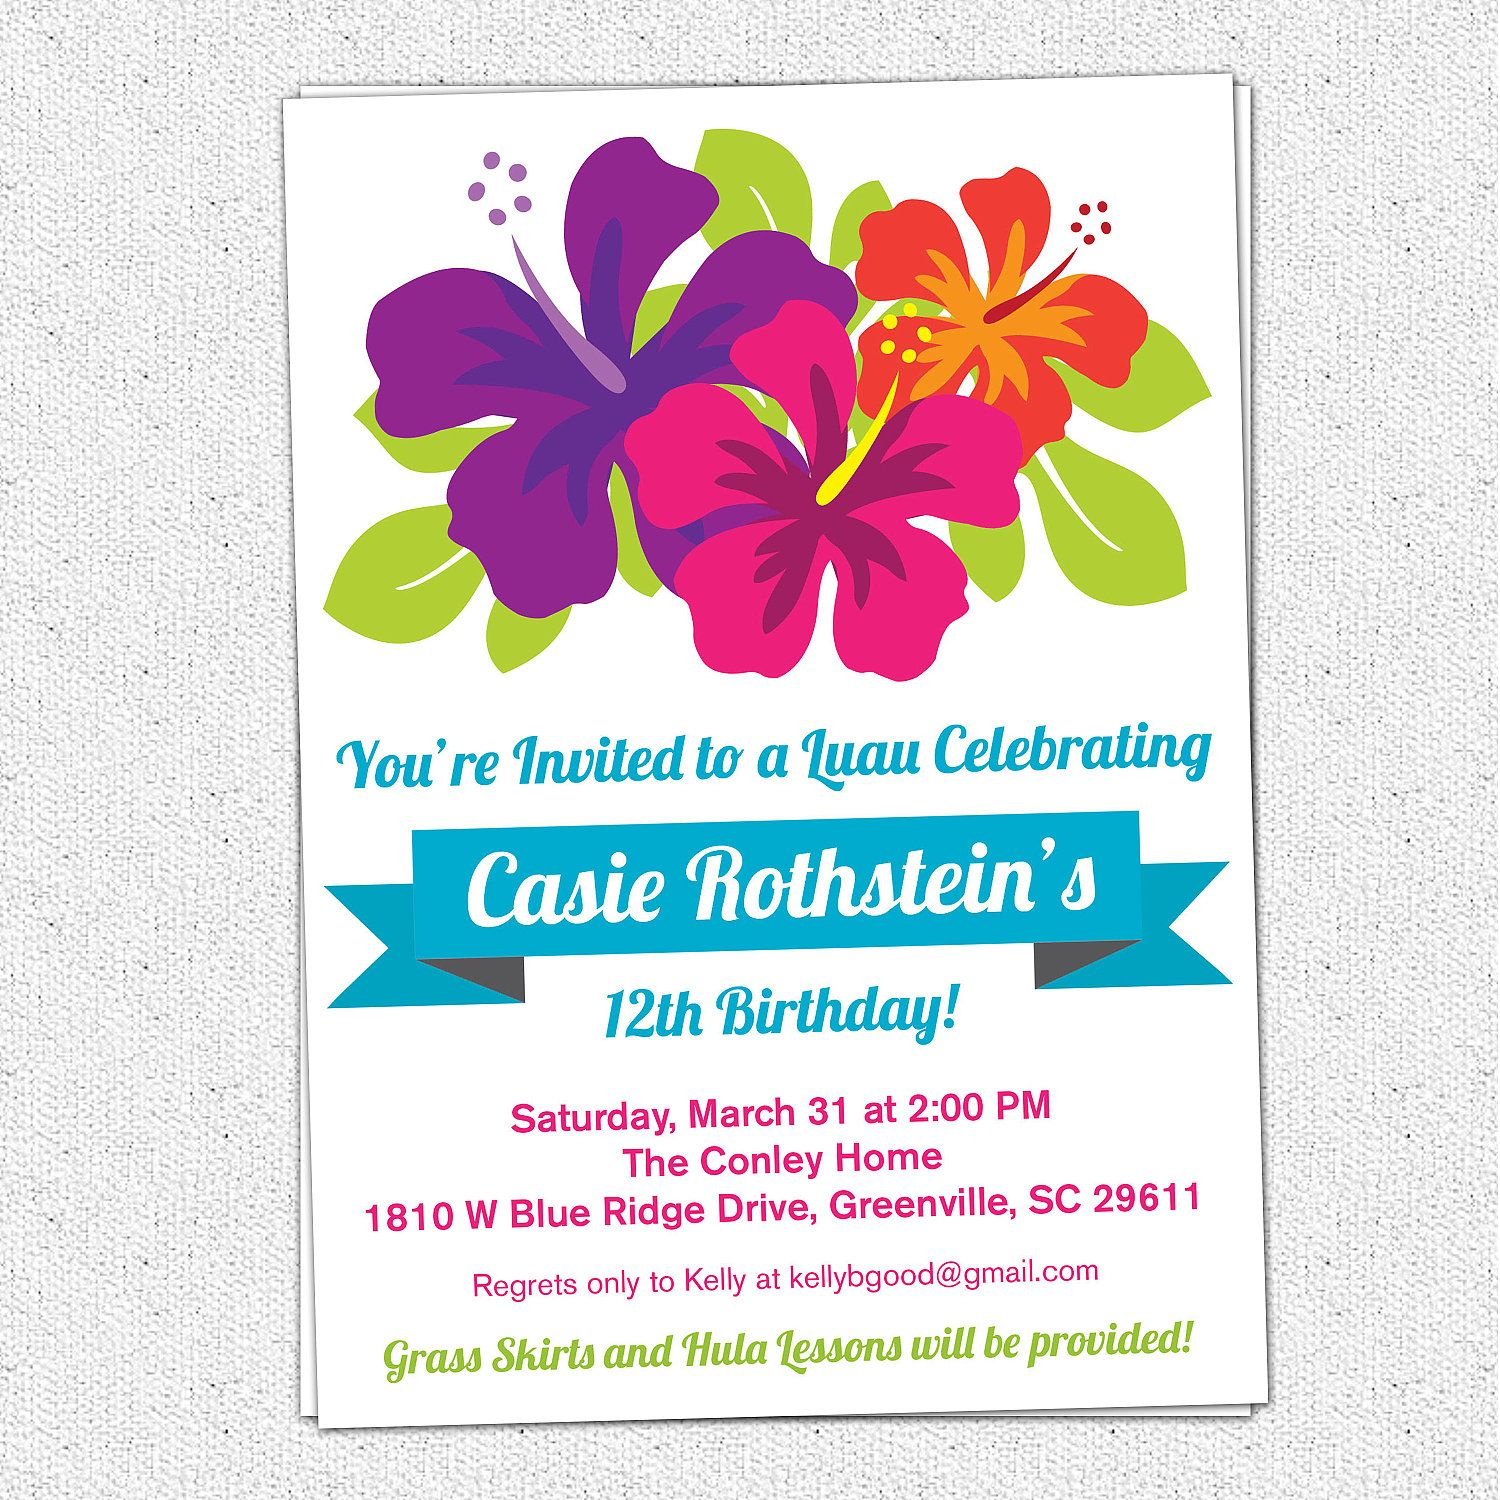 free printable luau birthday invitations templates | elma, Birthday invitations